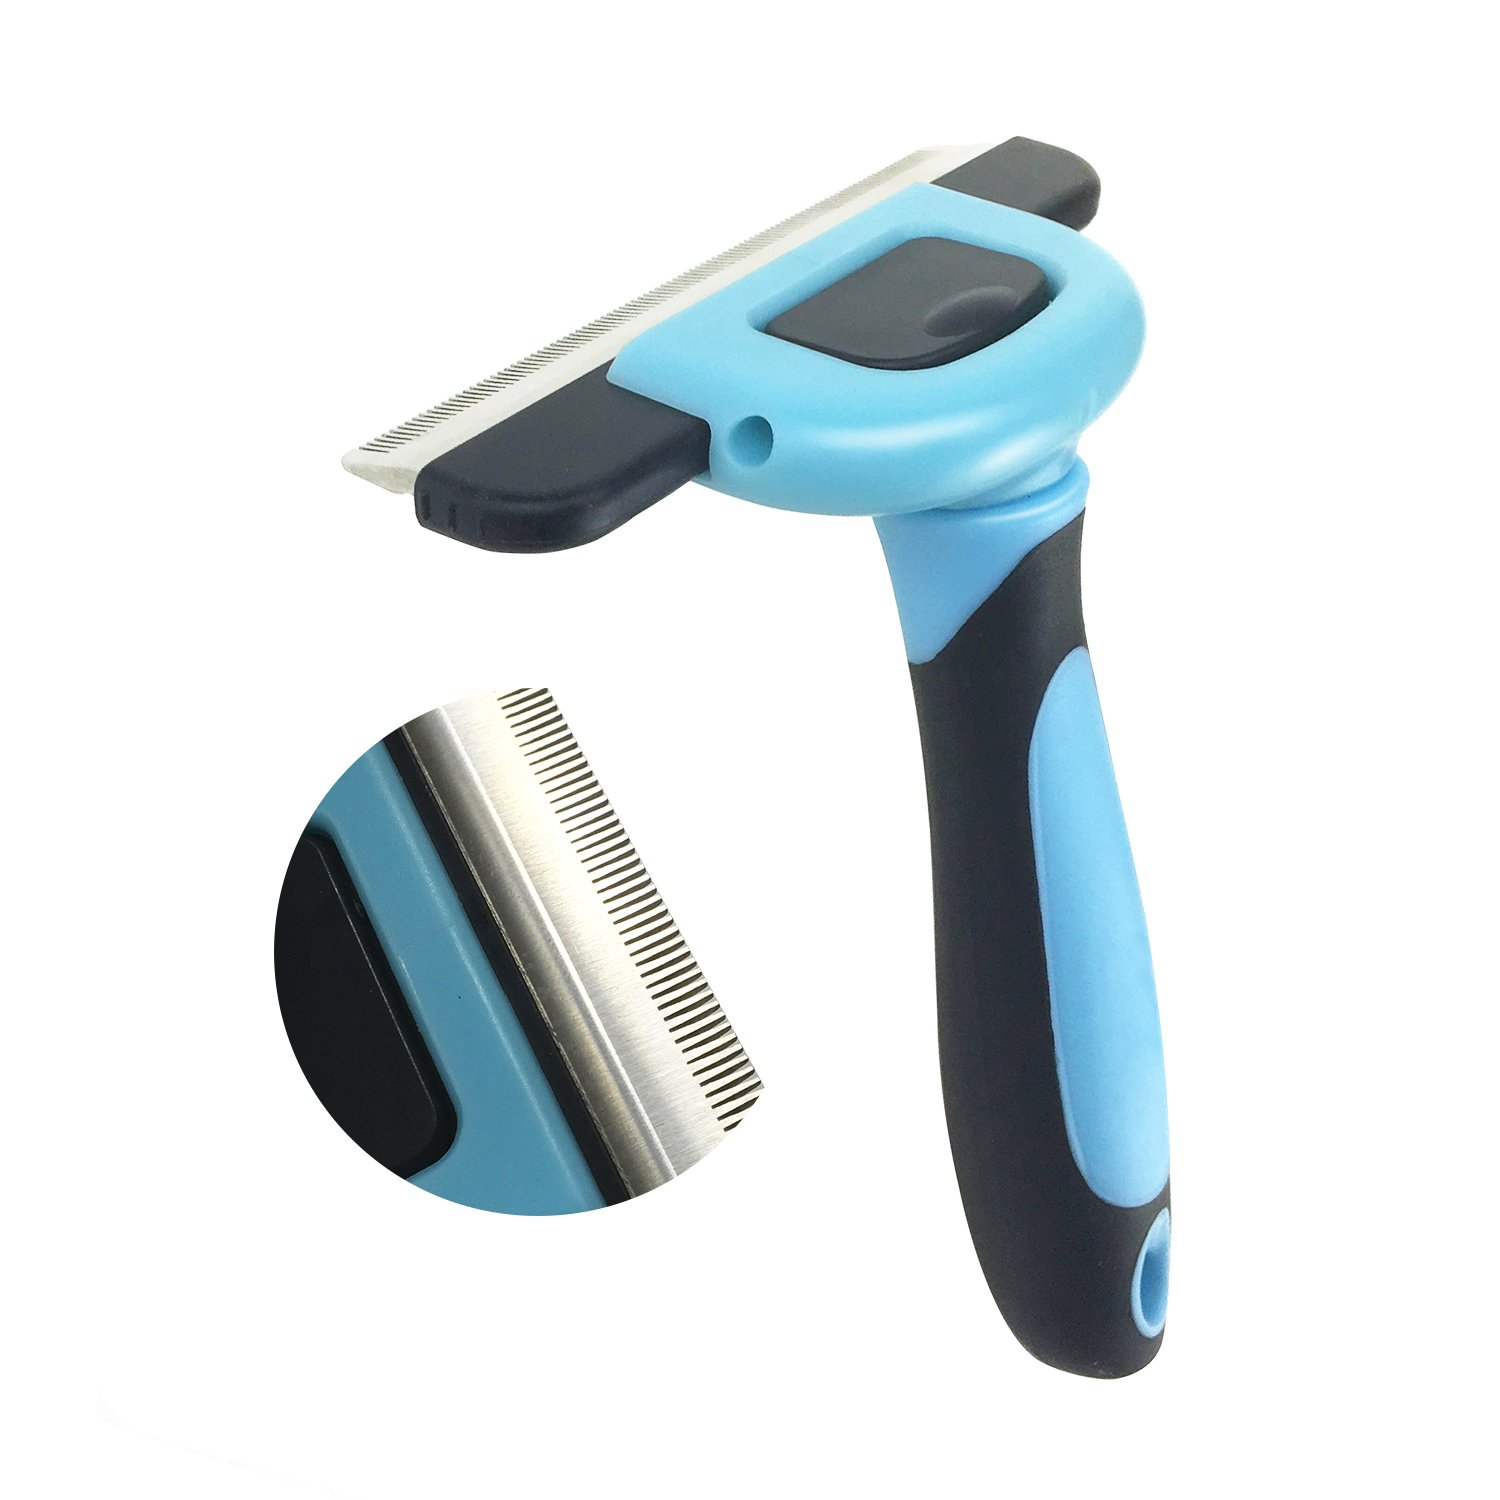 Pet Deshedding Tool, PeoTRIOL Dog Brush for Shedding, Dog Grooming Brush, Dog Hair Remover, Gentle Comb Tooth Reduce Shedding for Small, Medium & Large Dogs Cats